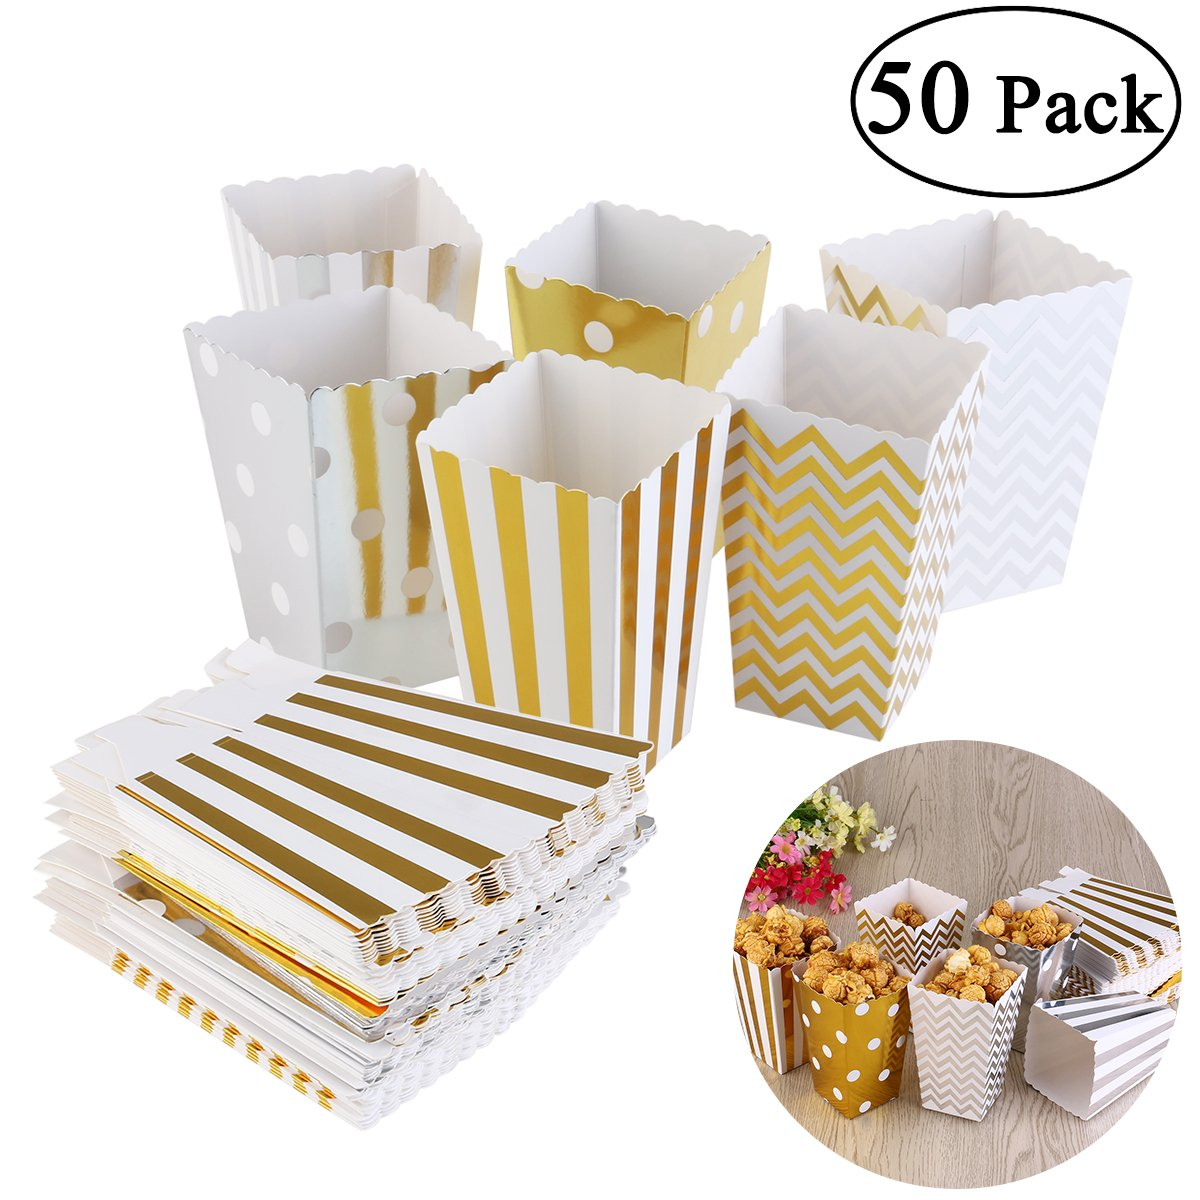 NUOLUX Popcorn Boxes Party Candy boxes 50pcs by NUOLUX